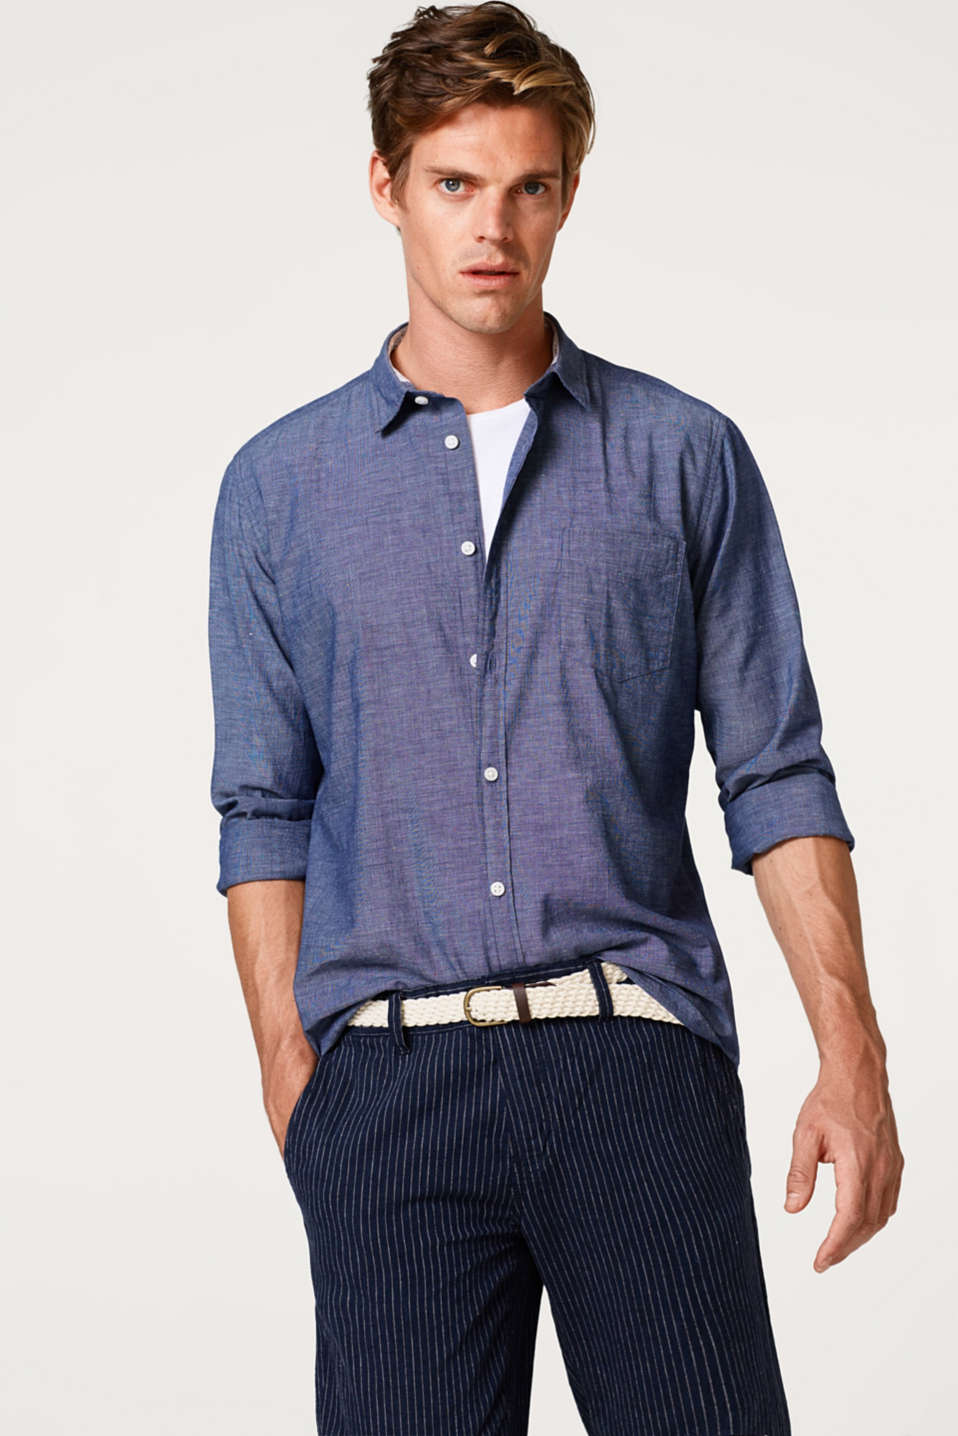 Esprit - Shirt with dimpled texture, 100% cotton